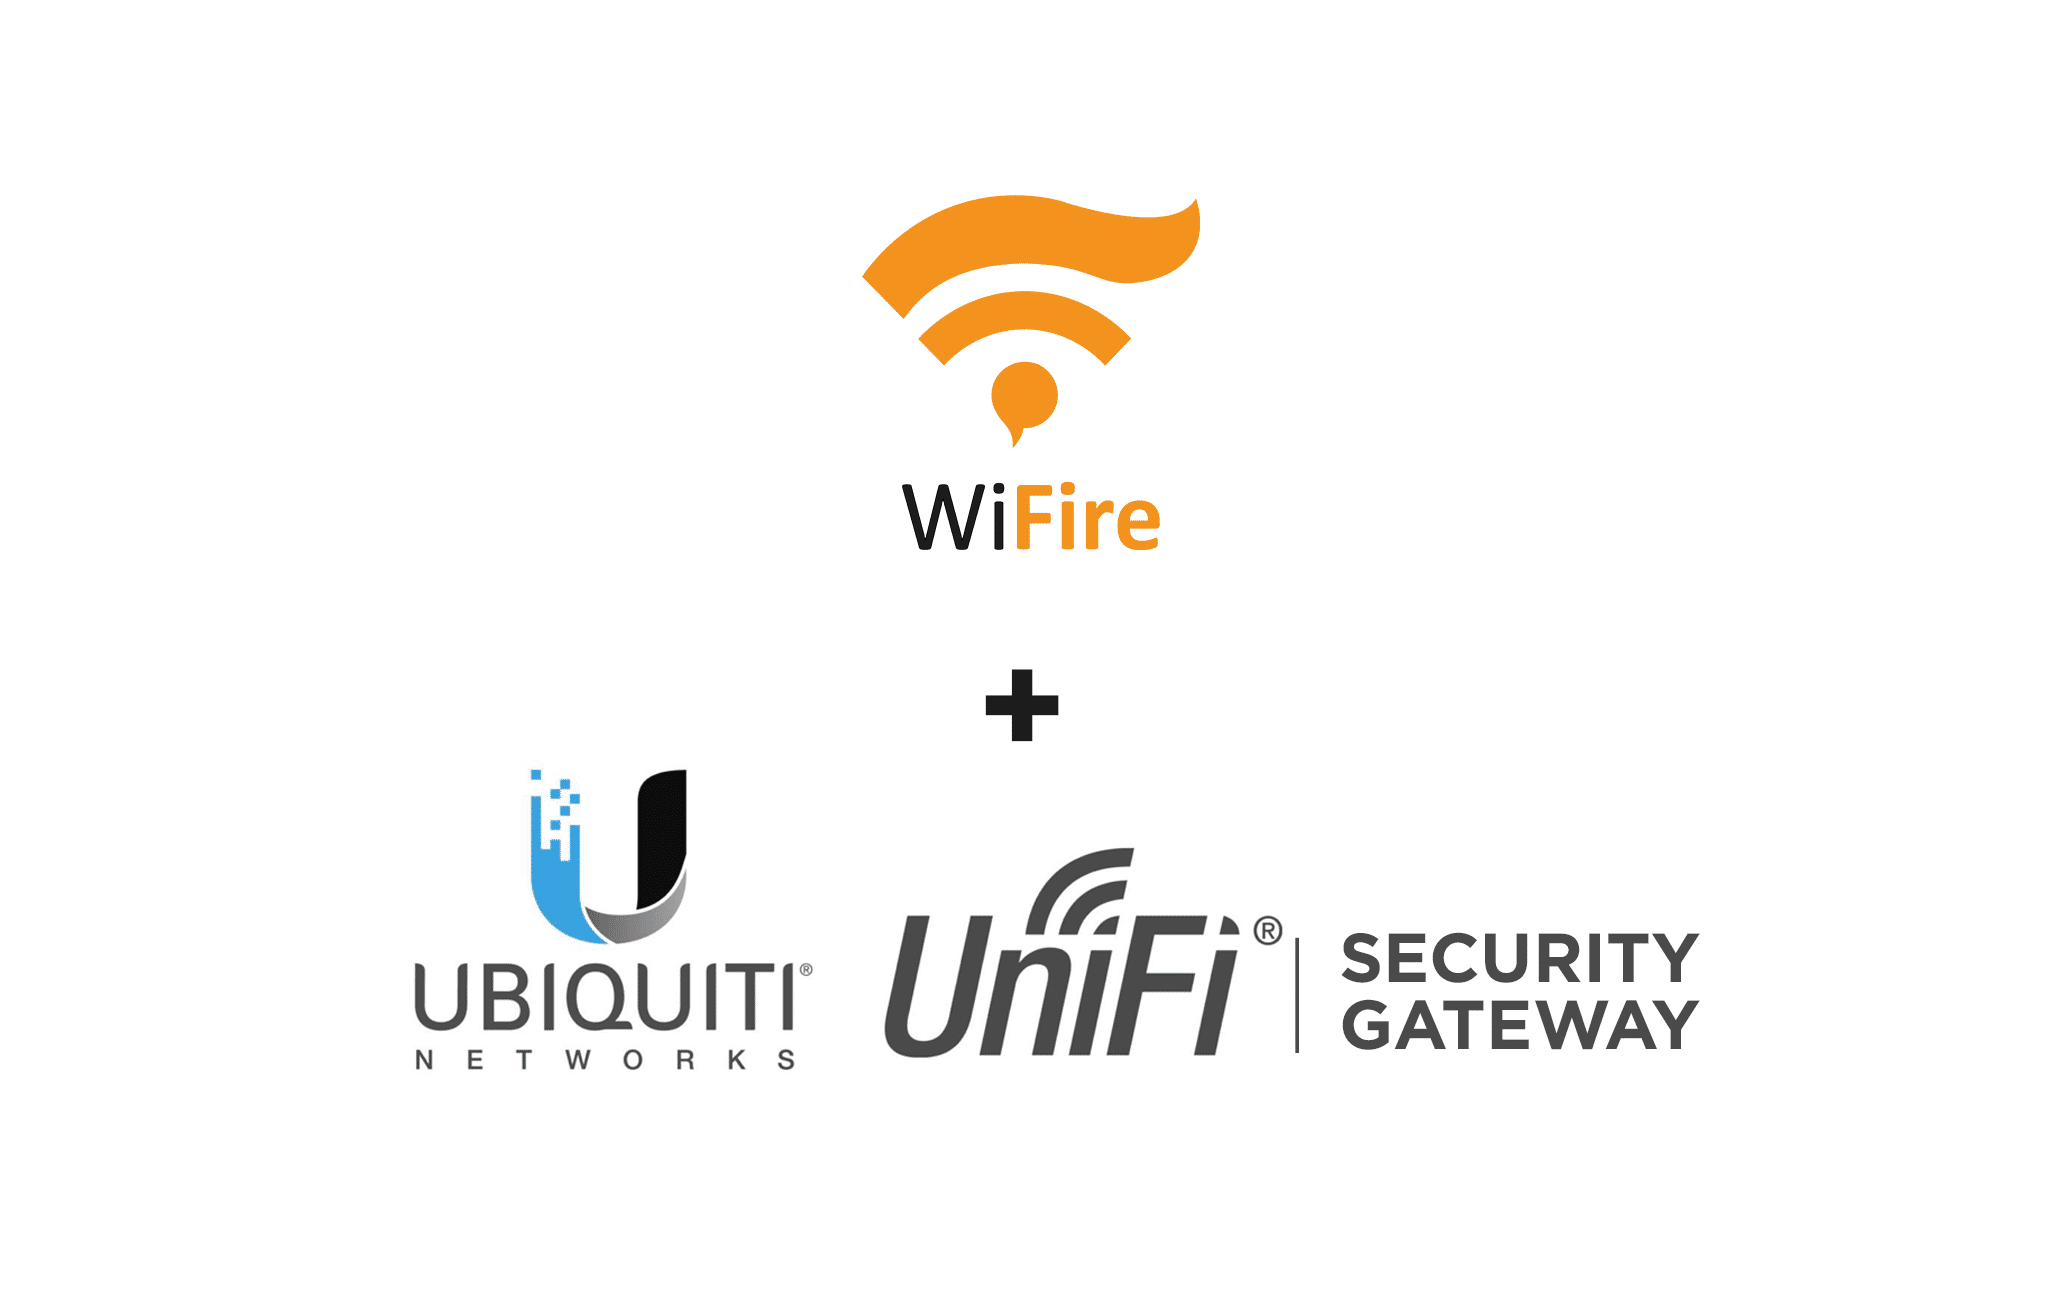 integração unifi security gateway